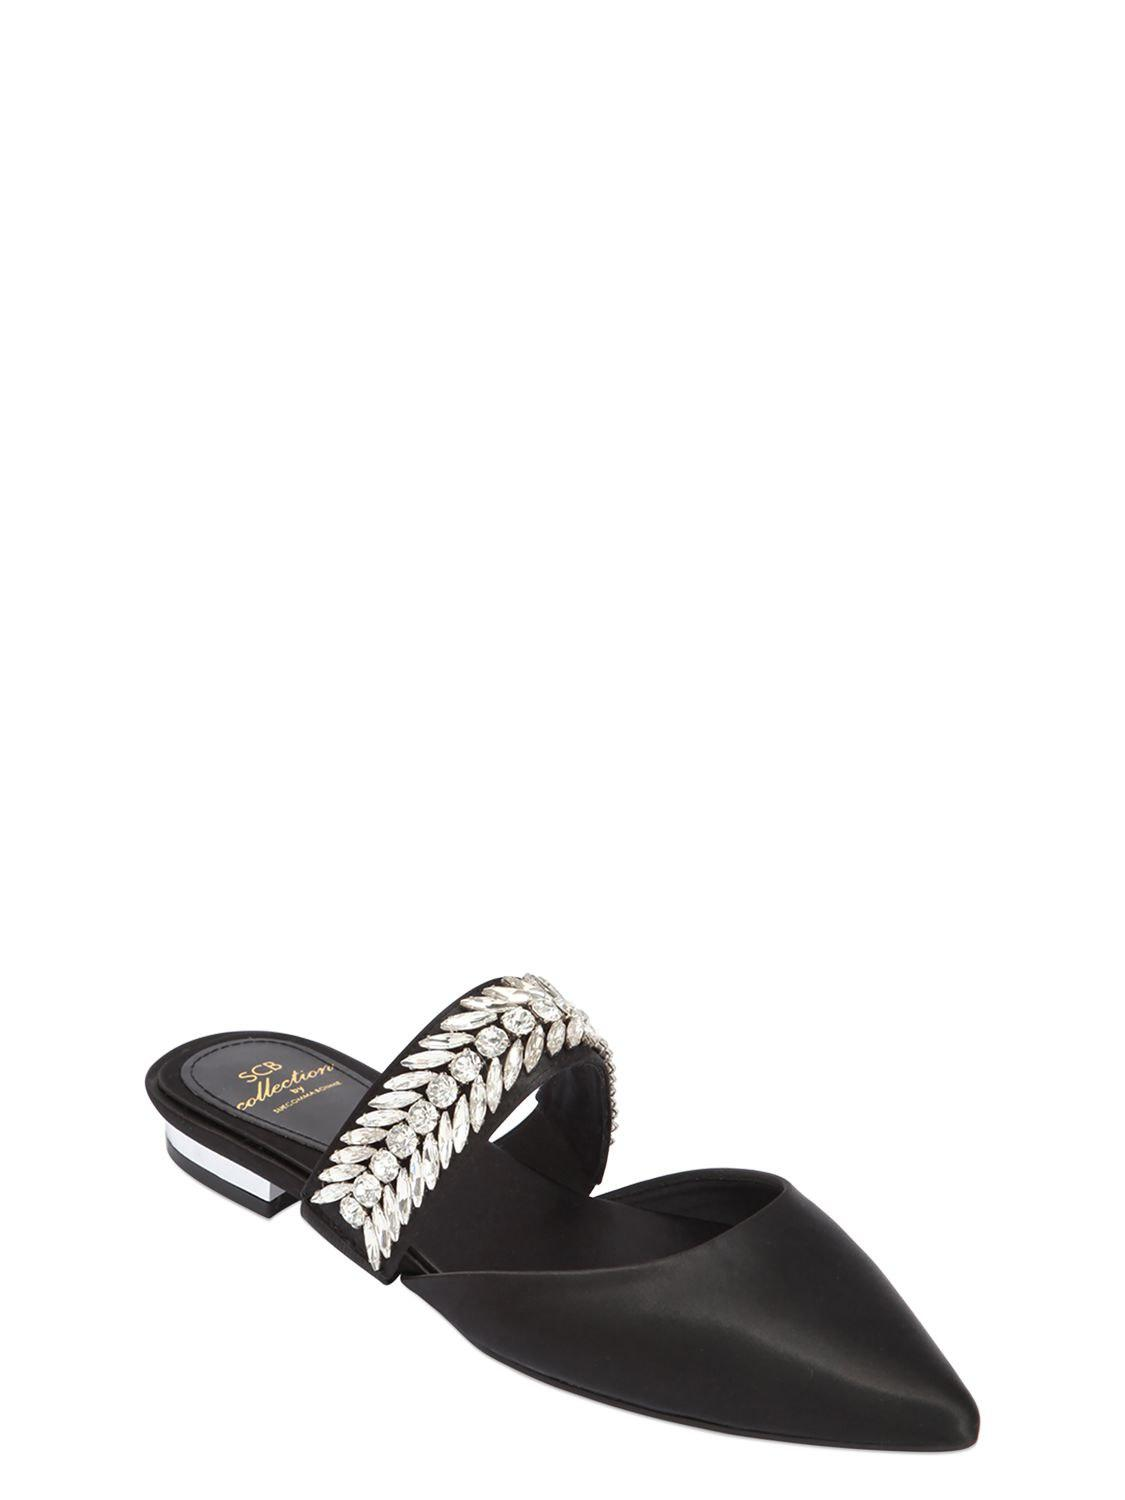 SUECOMMA BONNIE 10MM EMBELLISHED SATIN MULE FLATS